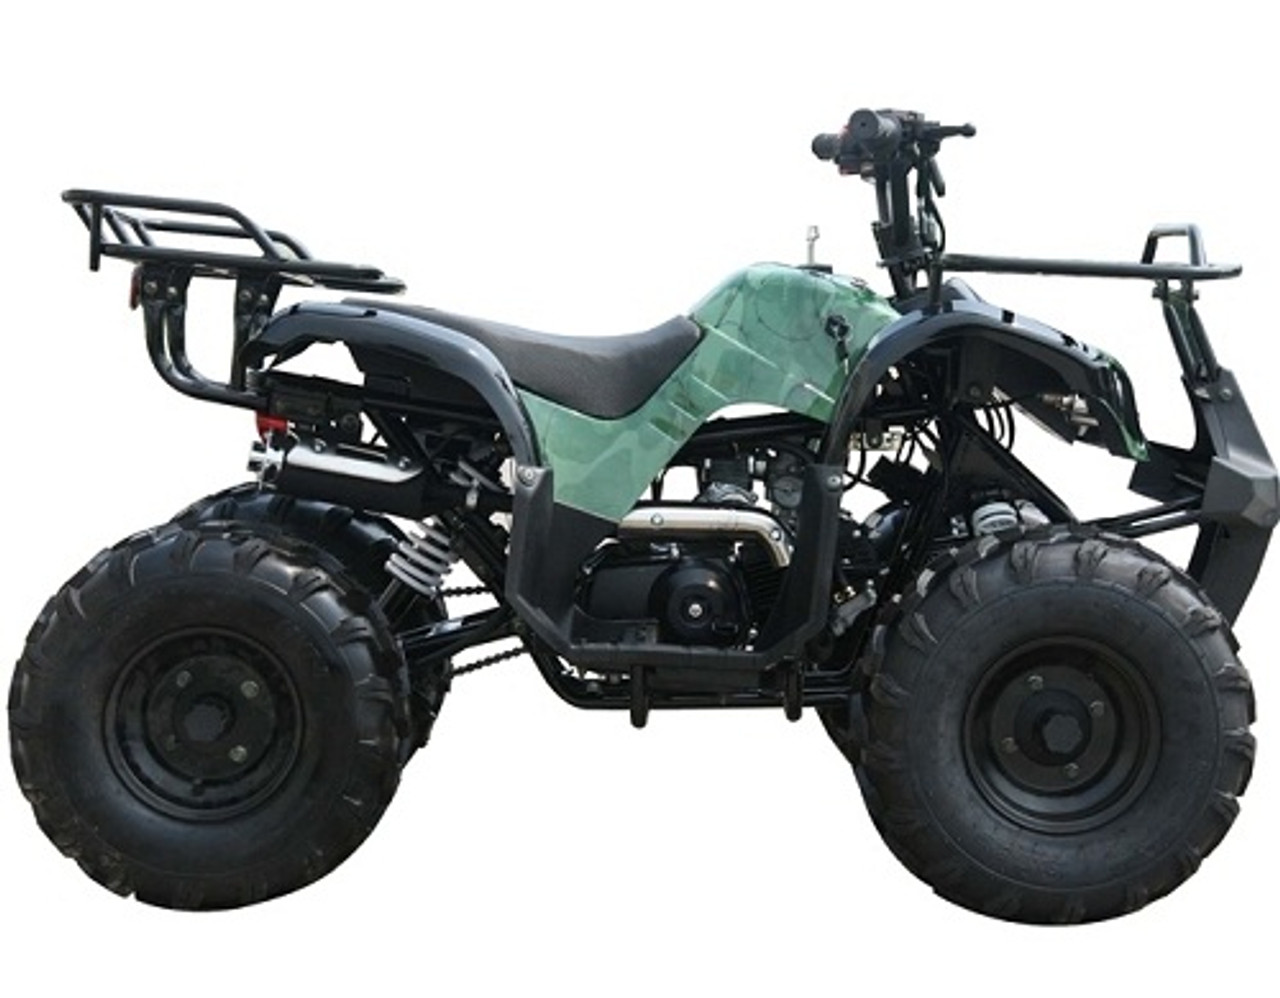 Coolster Assembled Kodiak-hd125 semi-auto atv mid size